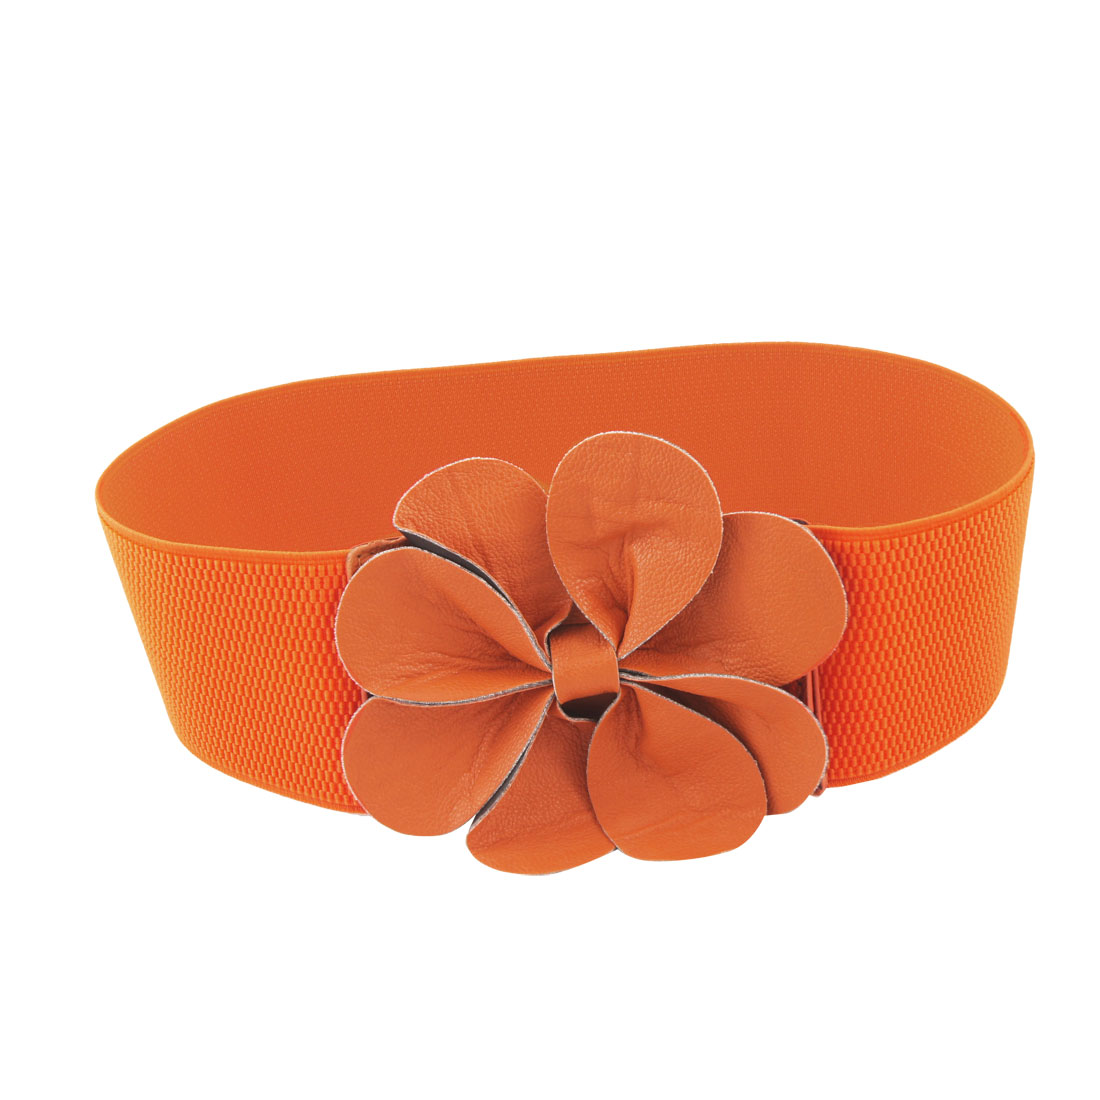 Ladies Orange Faux Leather Flower Elastic 7.5cm Wide Cinch Belt